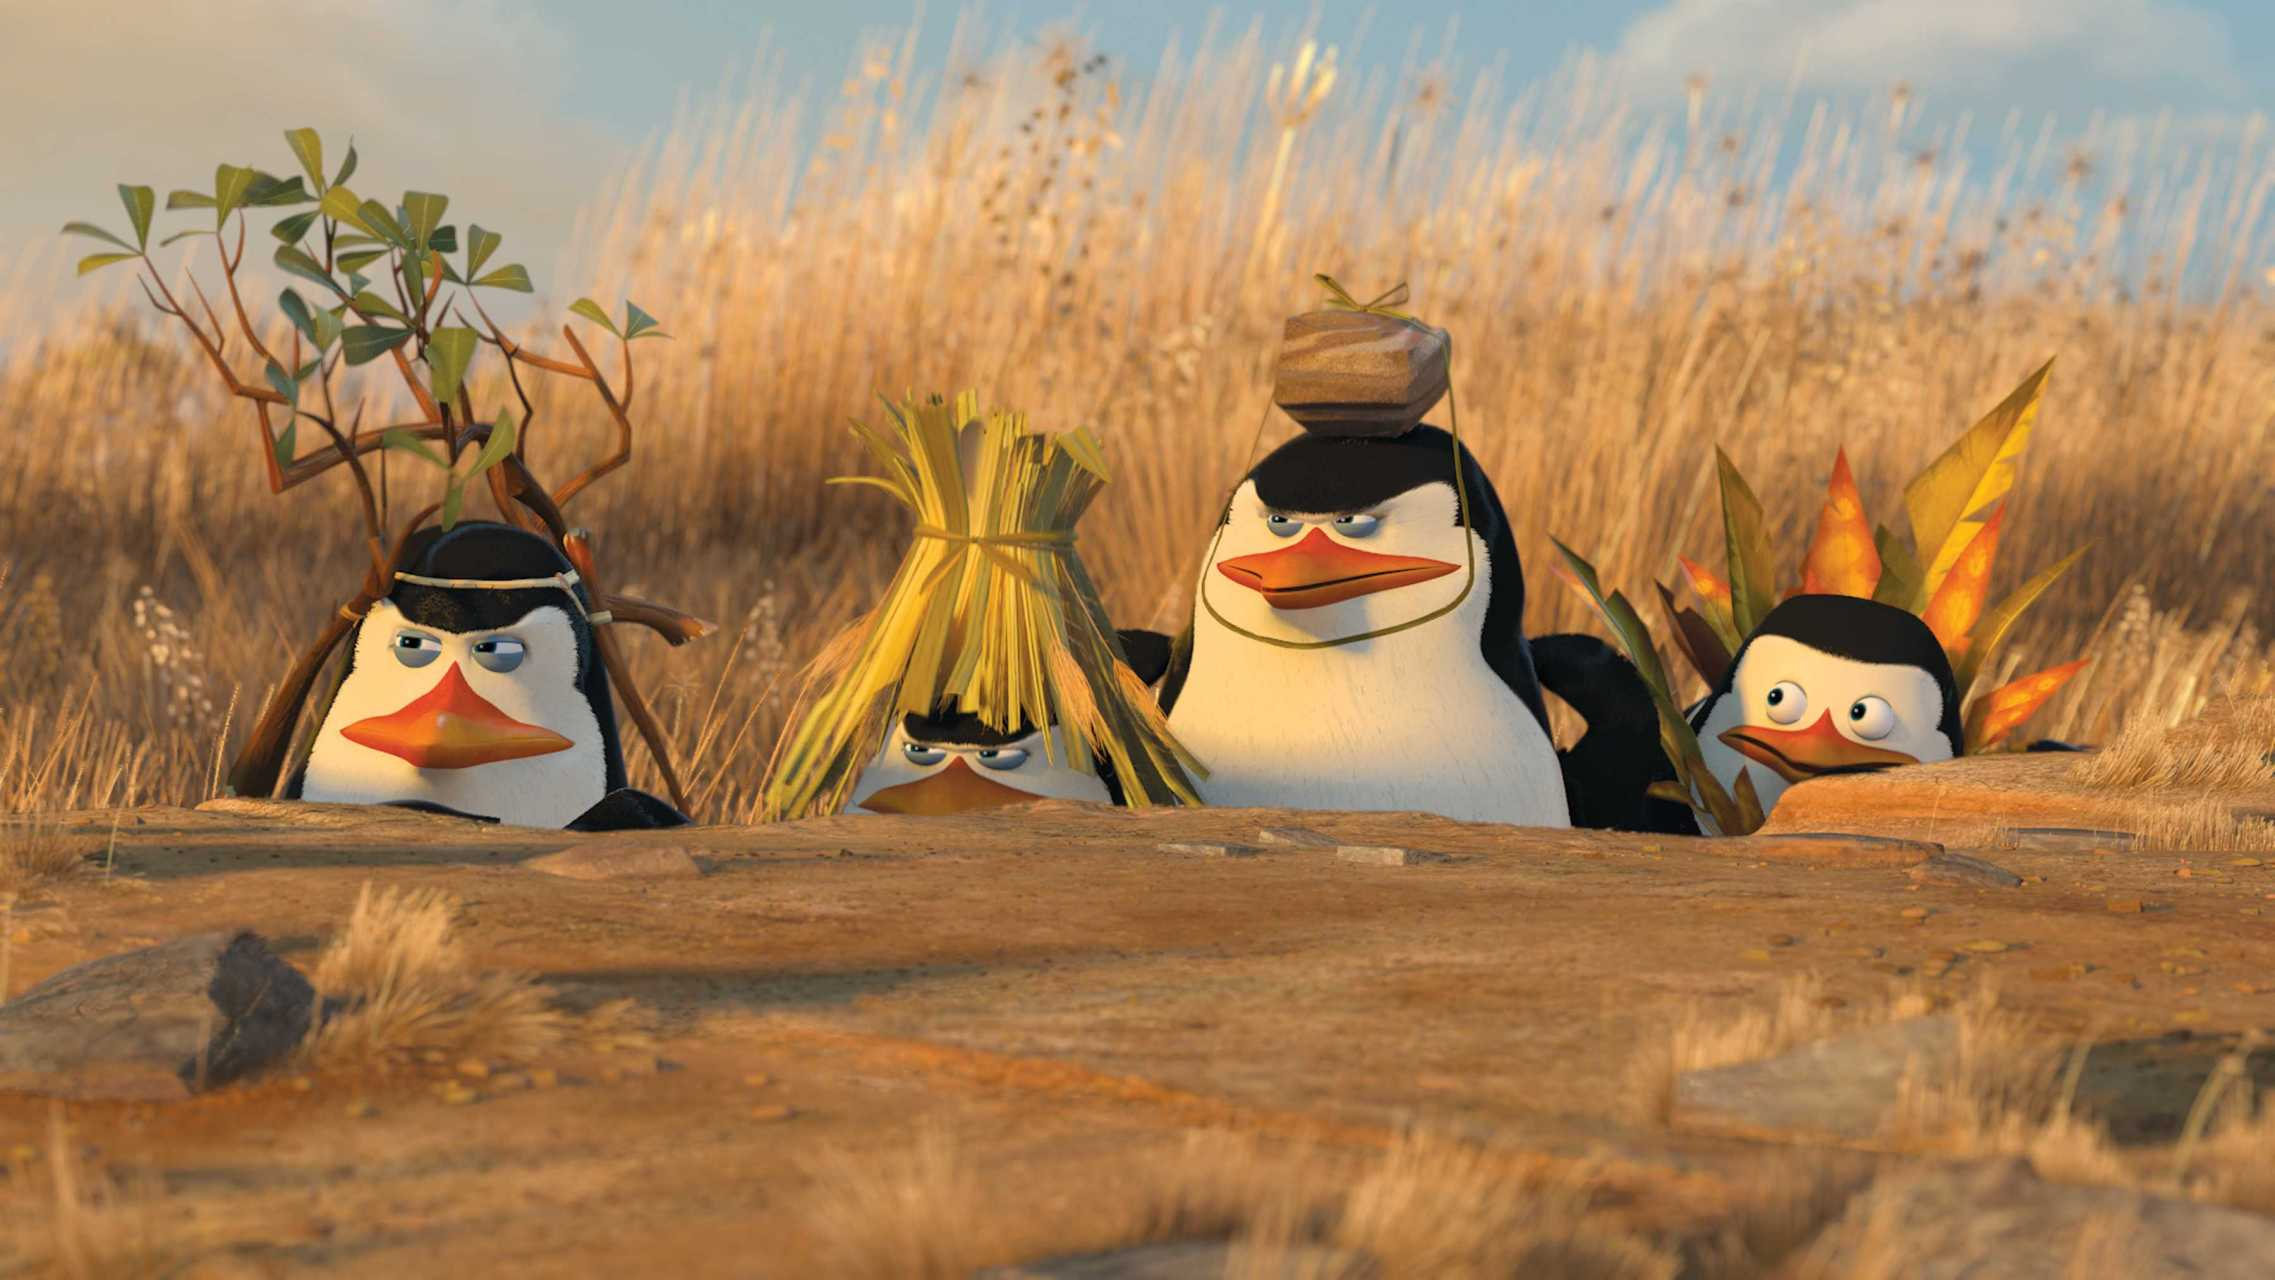 Penguins of Madagascar Funny Movie wallpaper  wallpaper free download 2275x1280